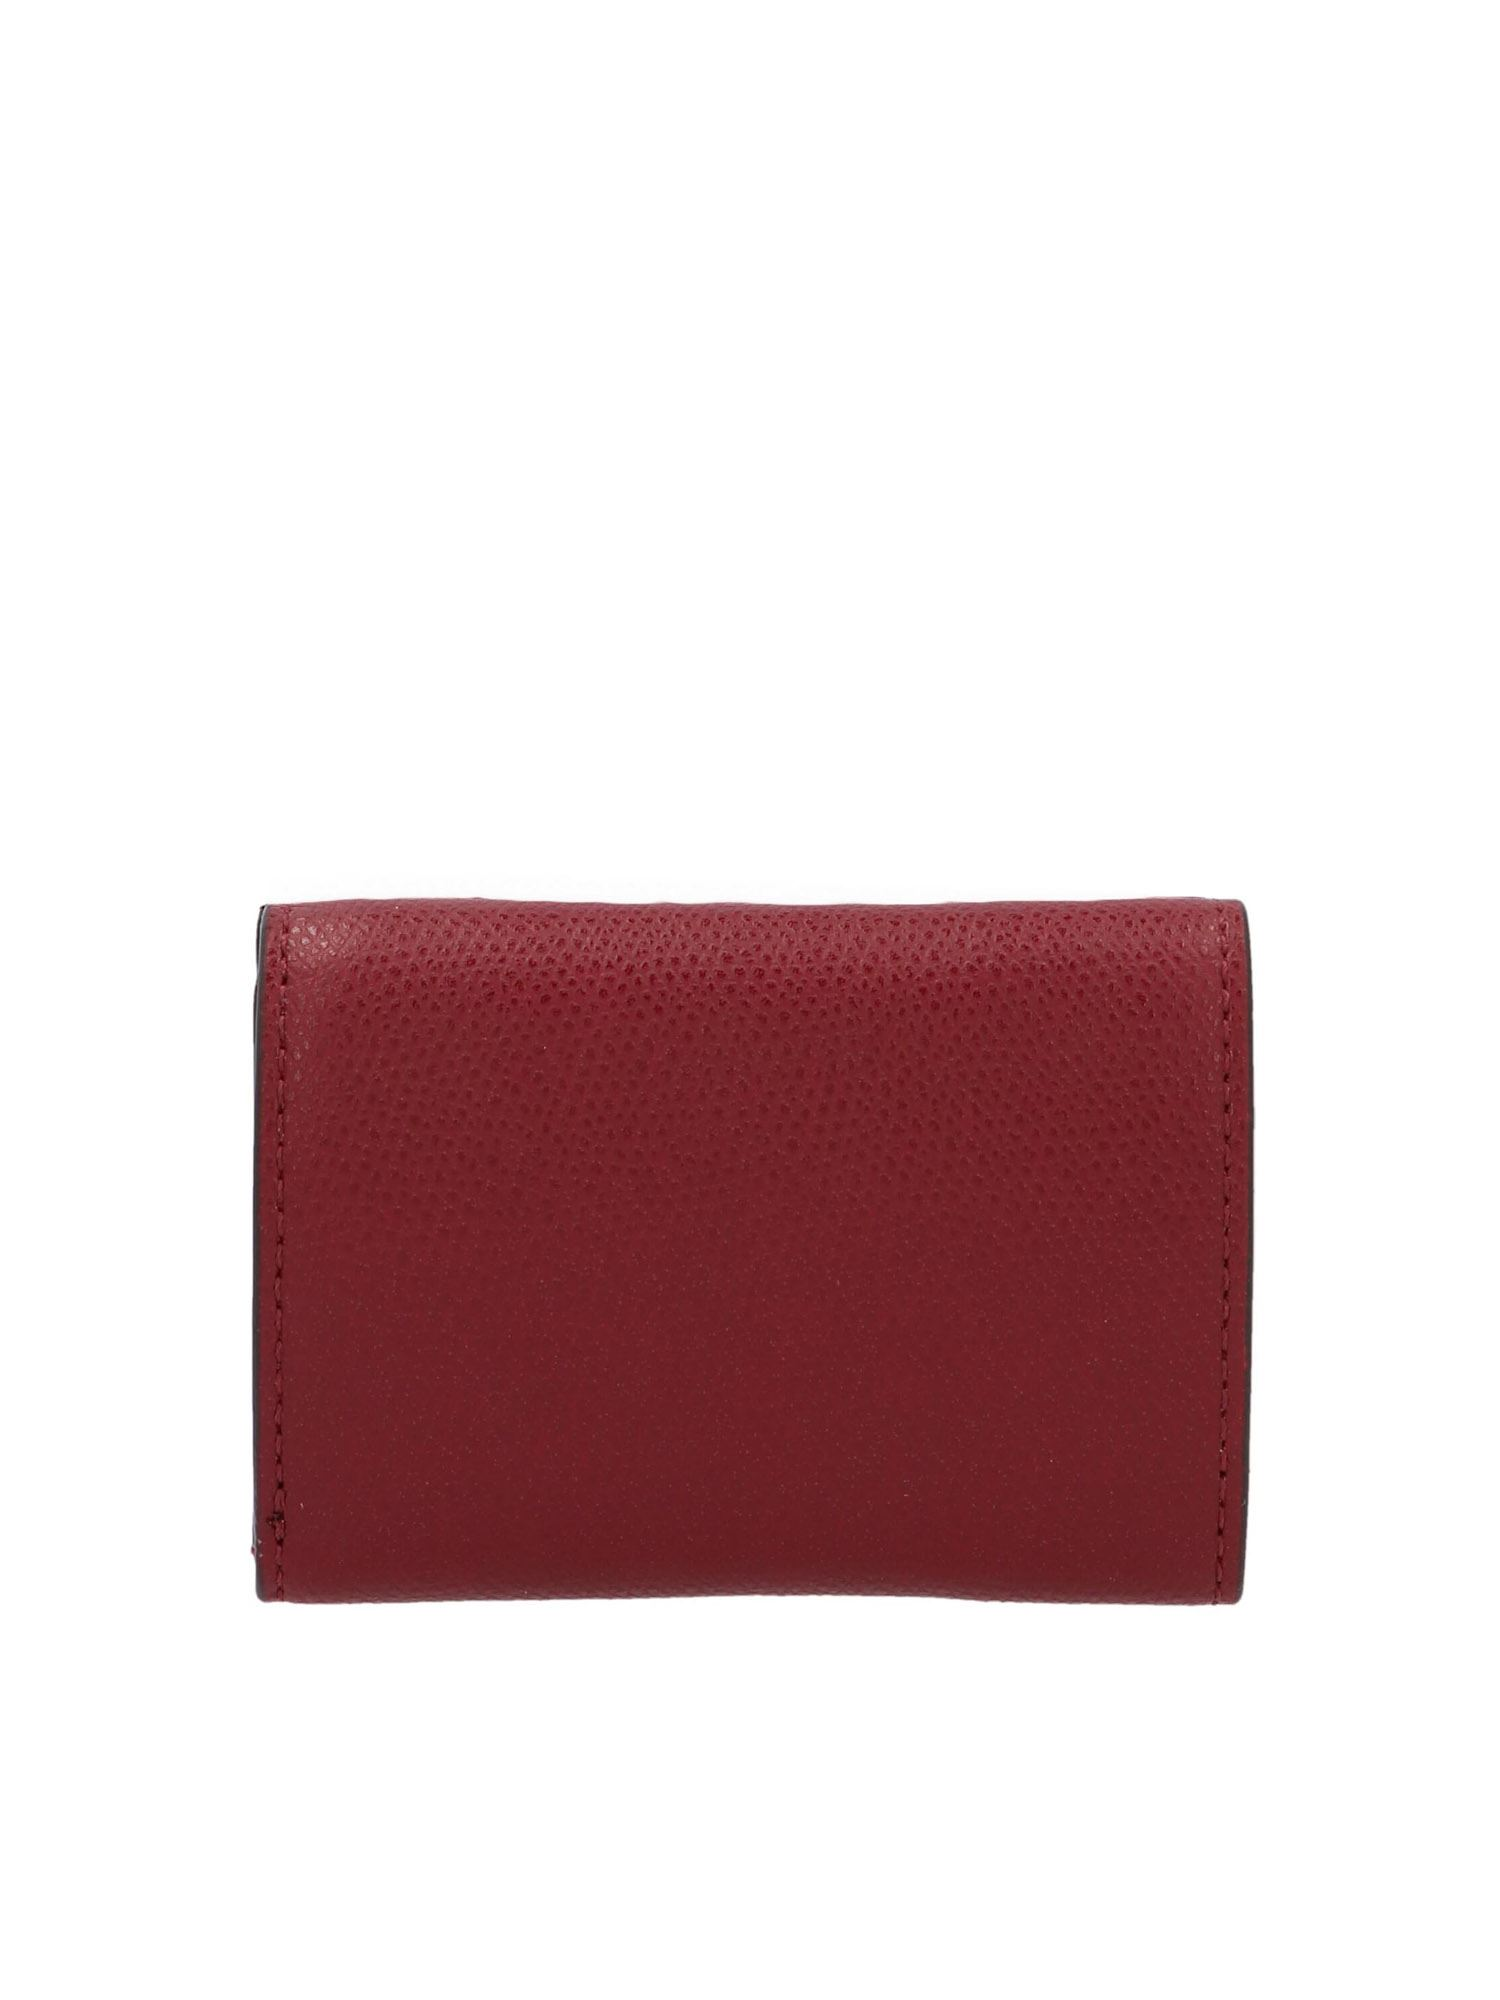 Fendi MICRO TRIFOLD WALLET IN RED